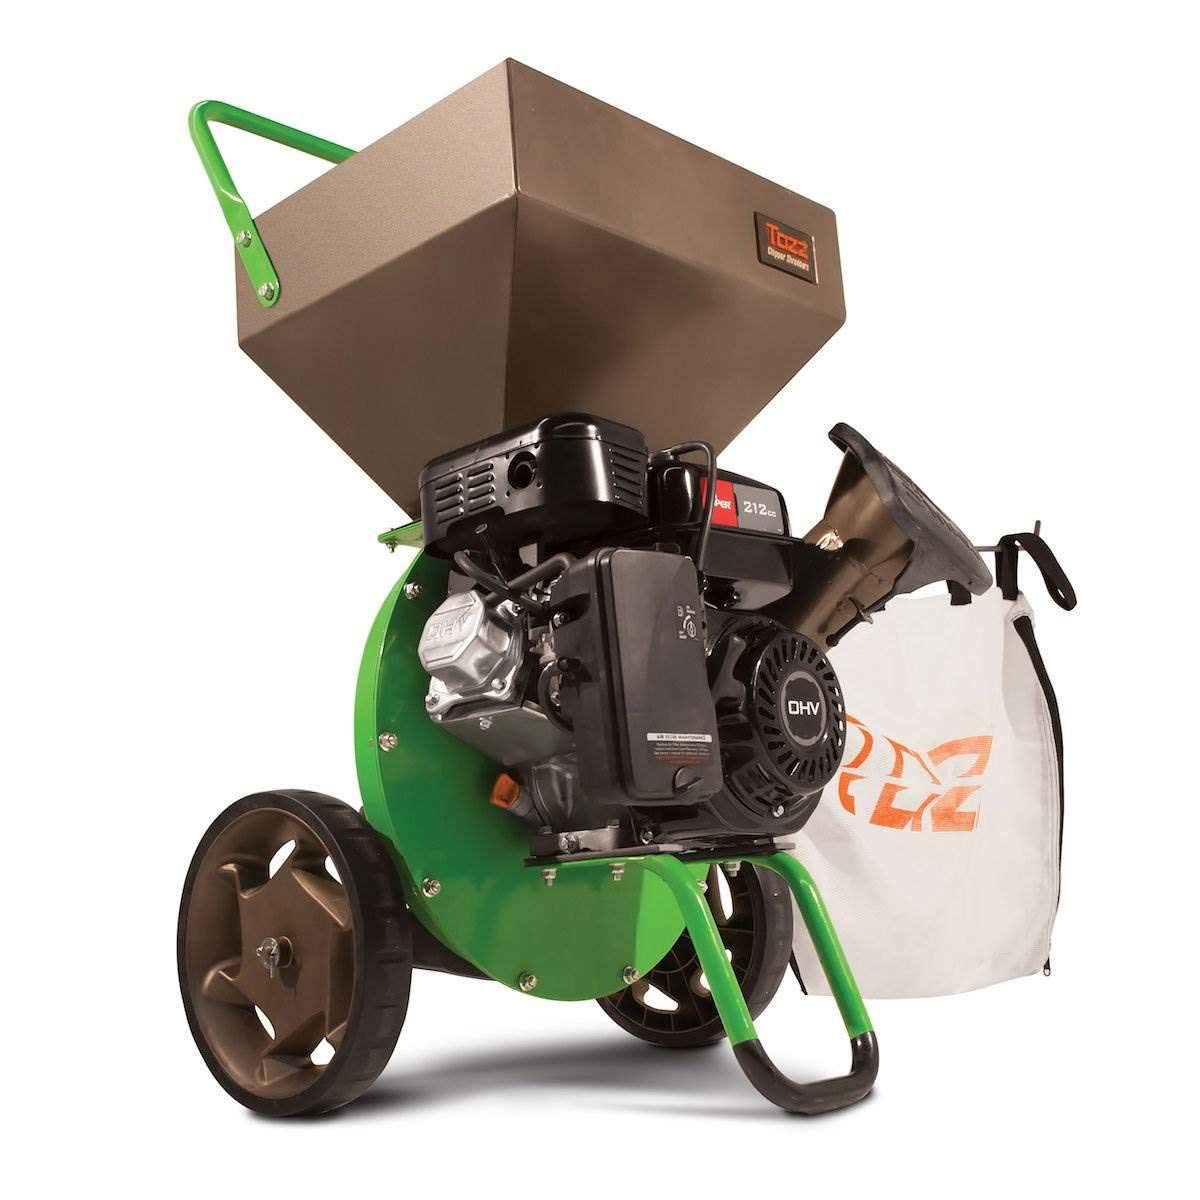 Earthquake TAZZ 30520 Heavy Duty 212cc Gas Powered 4 Cycle Viper Engine 3:1 Capable Multi-Function Wood Chipper Shredder 3'' Max Wood Diameter Capacity, 5 Year Warranty by Earthquake